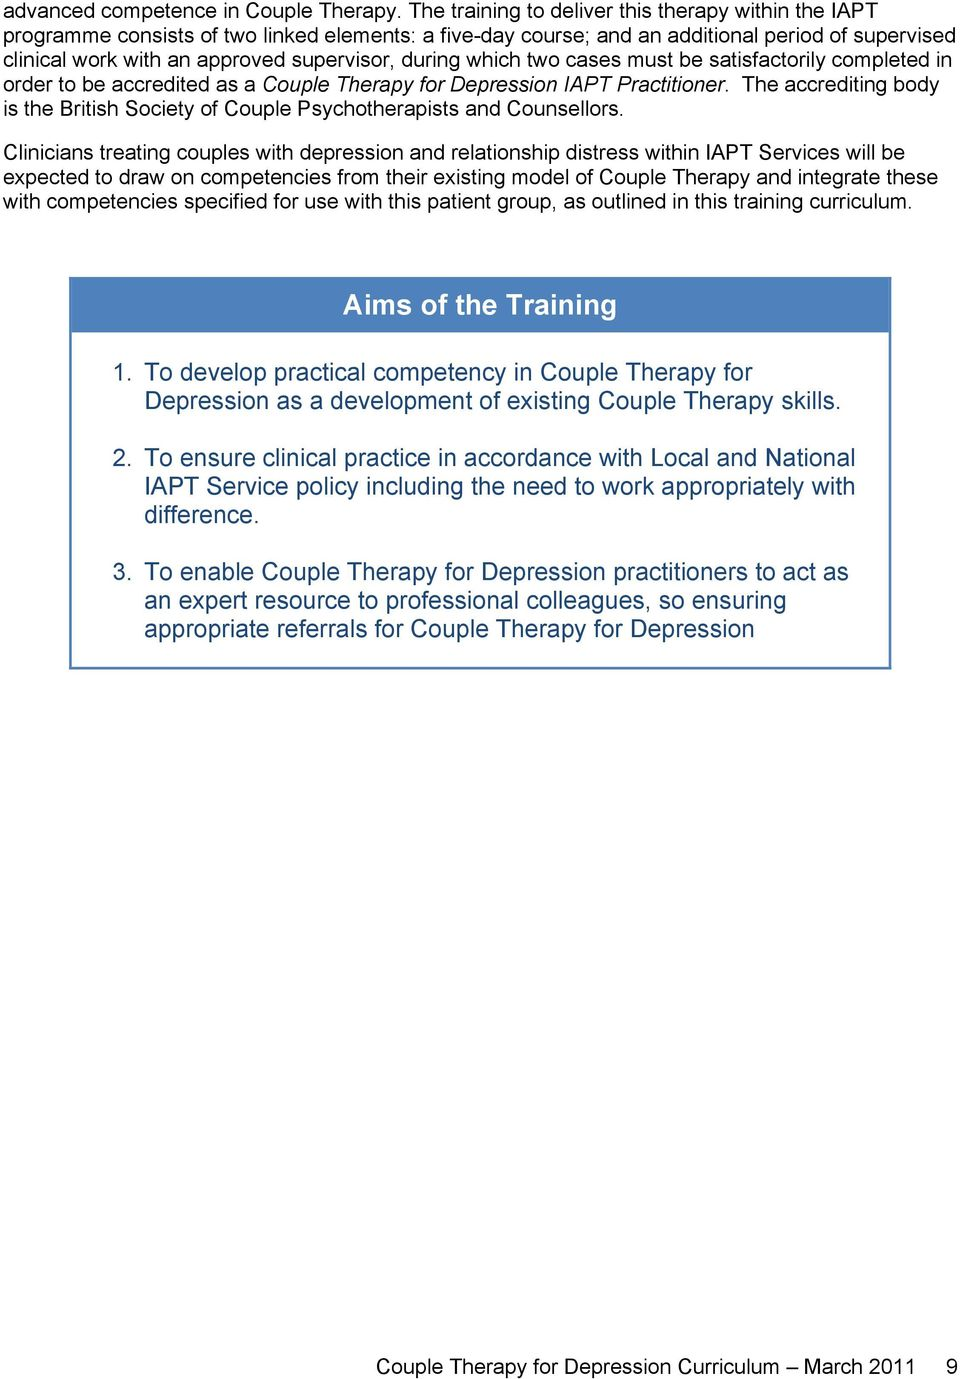 during which two cases must be satisfactorily completed in order to be accredited as a Couple Therapy for Depression IAPT Practitioner.